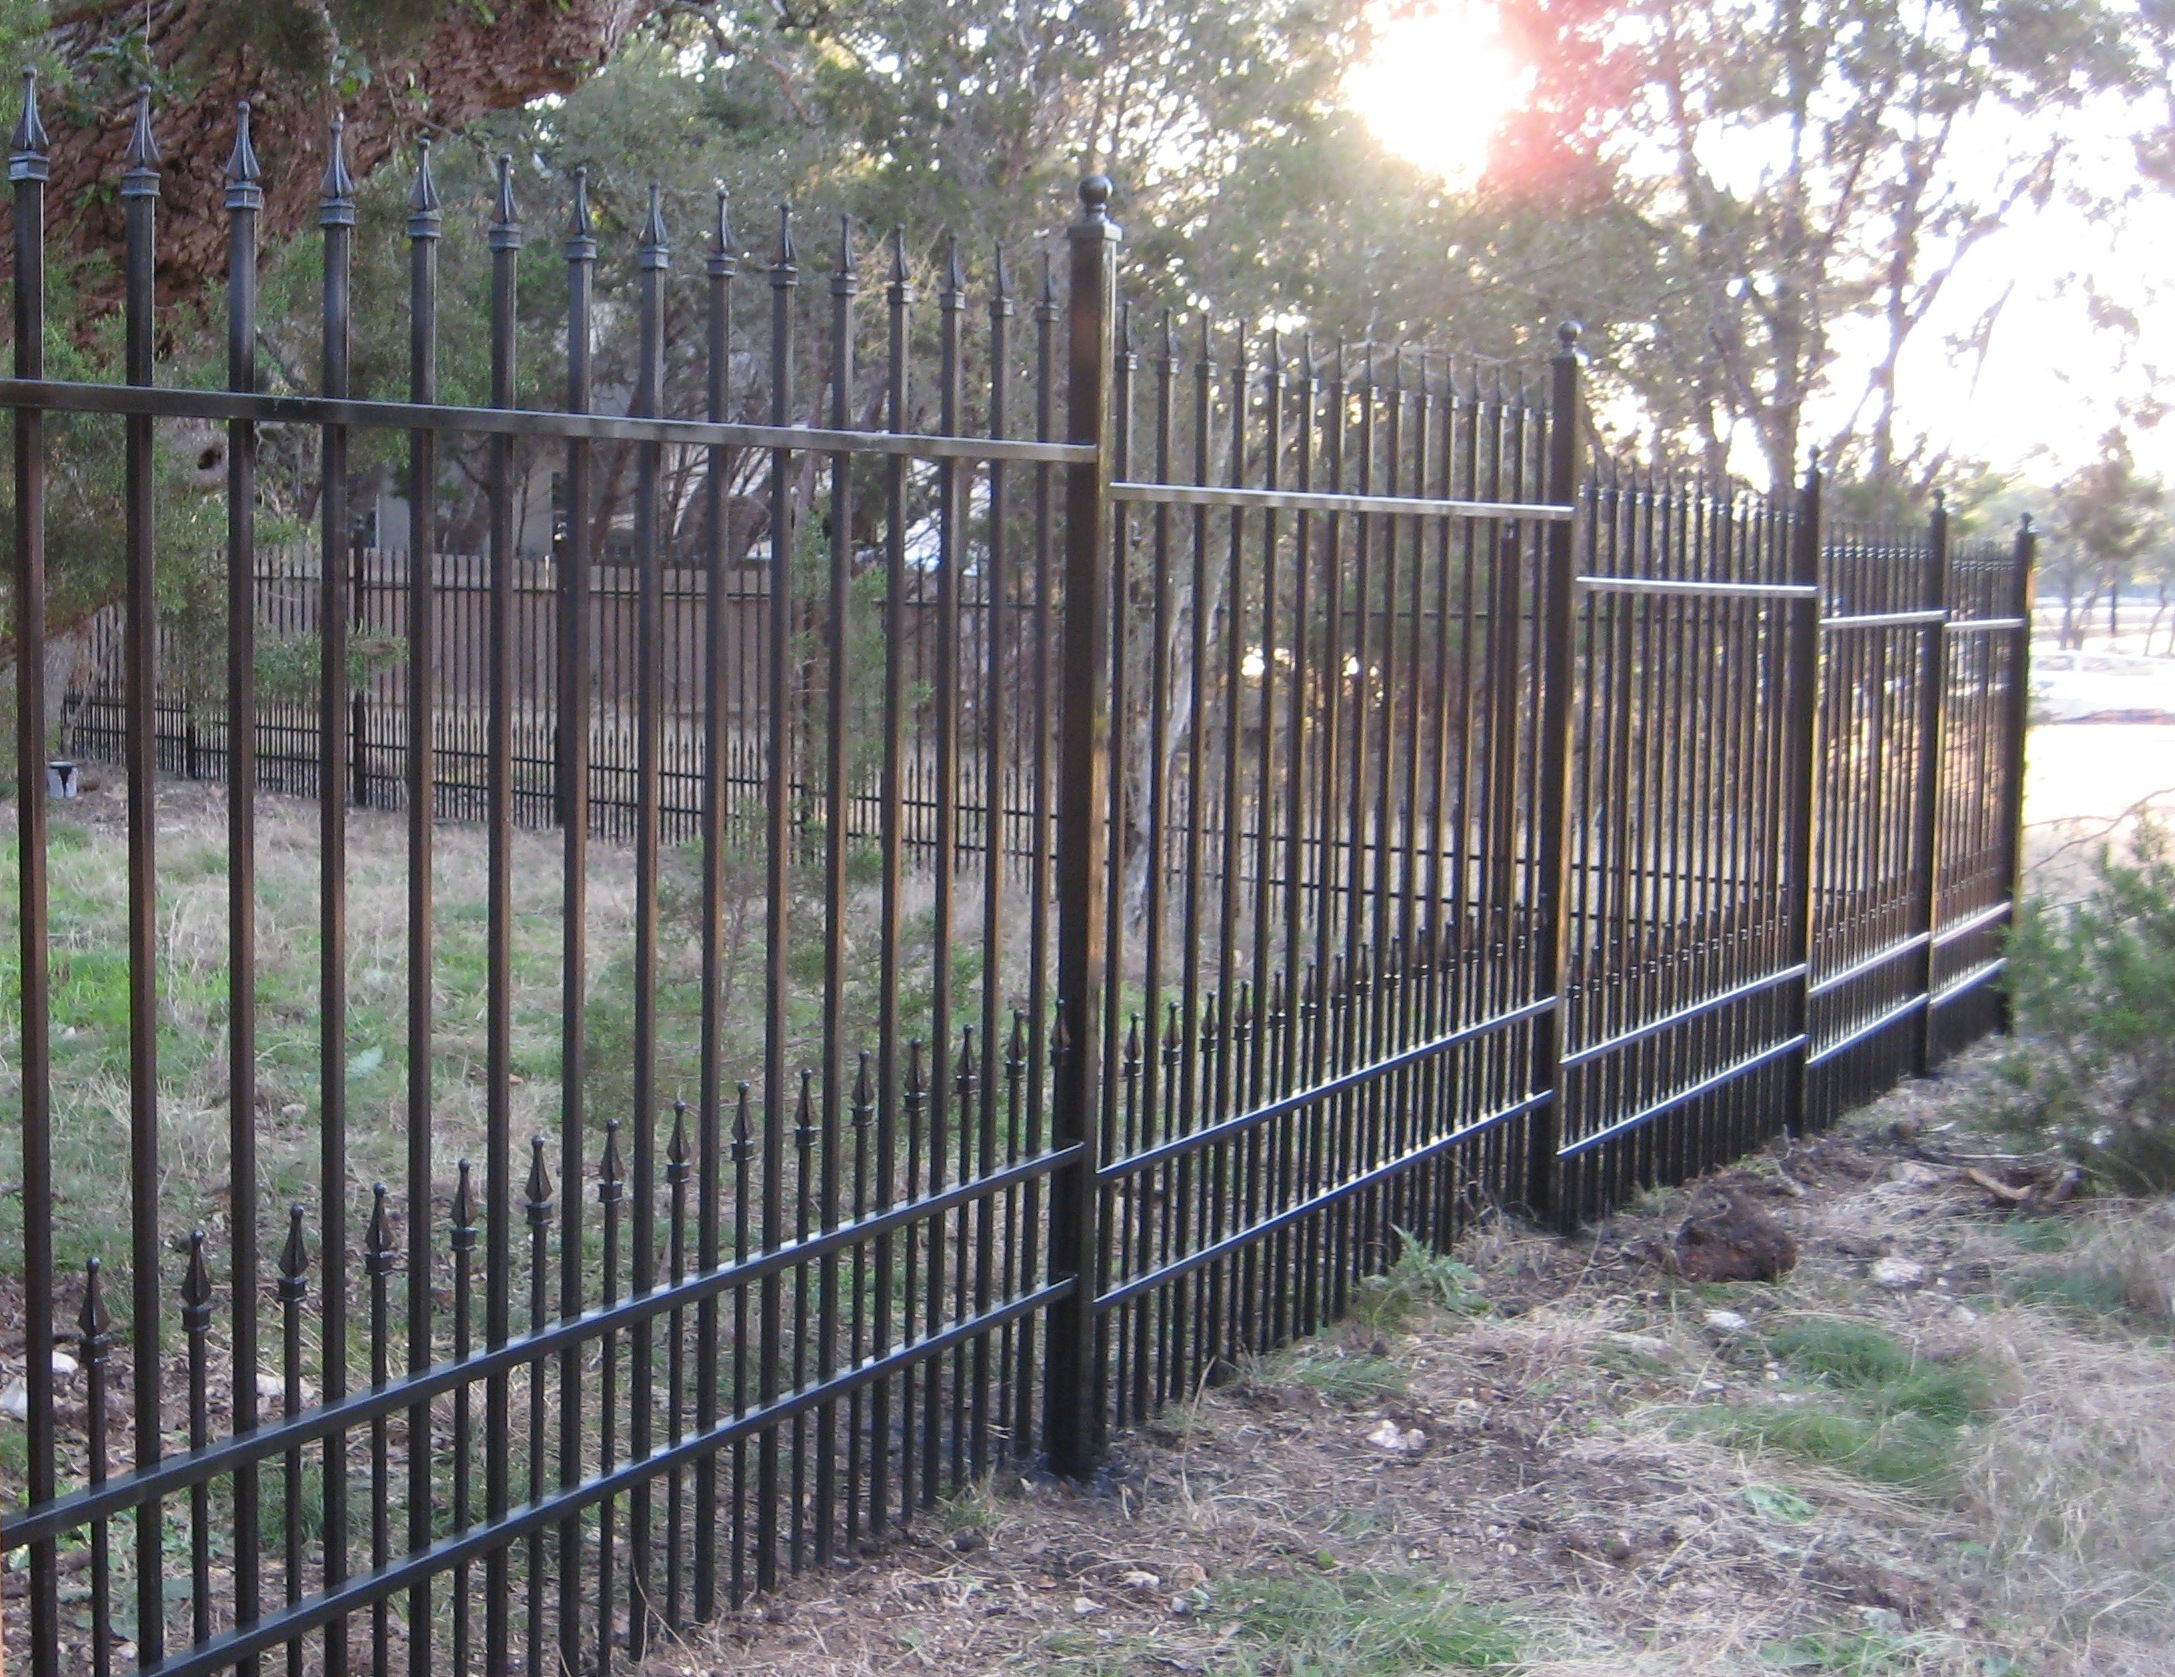 Clean The Decorative Wrought Iron Railing : Clean The Decorative Wrought Iron Railing : Wrought Iron Fence